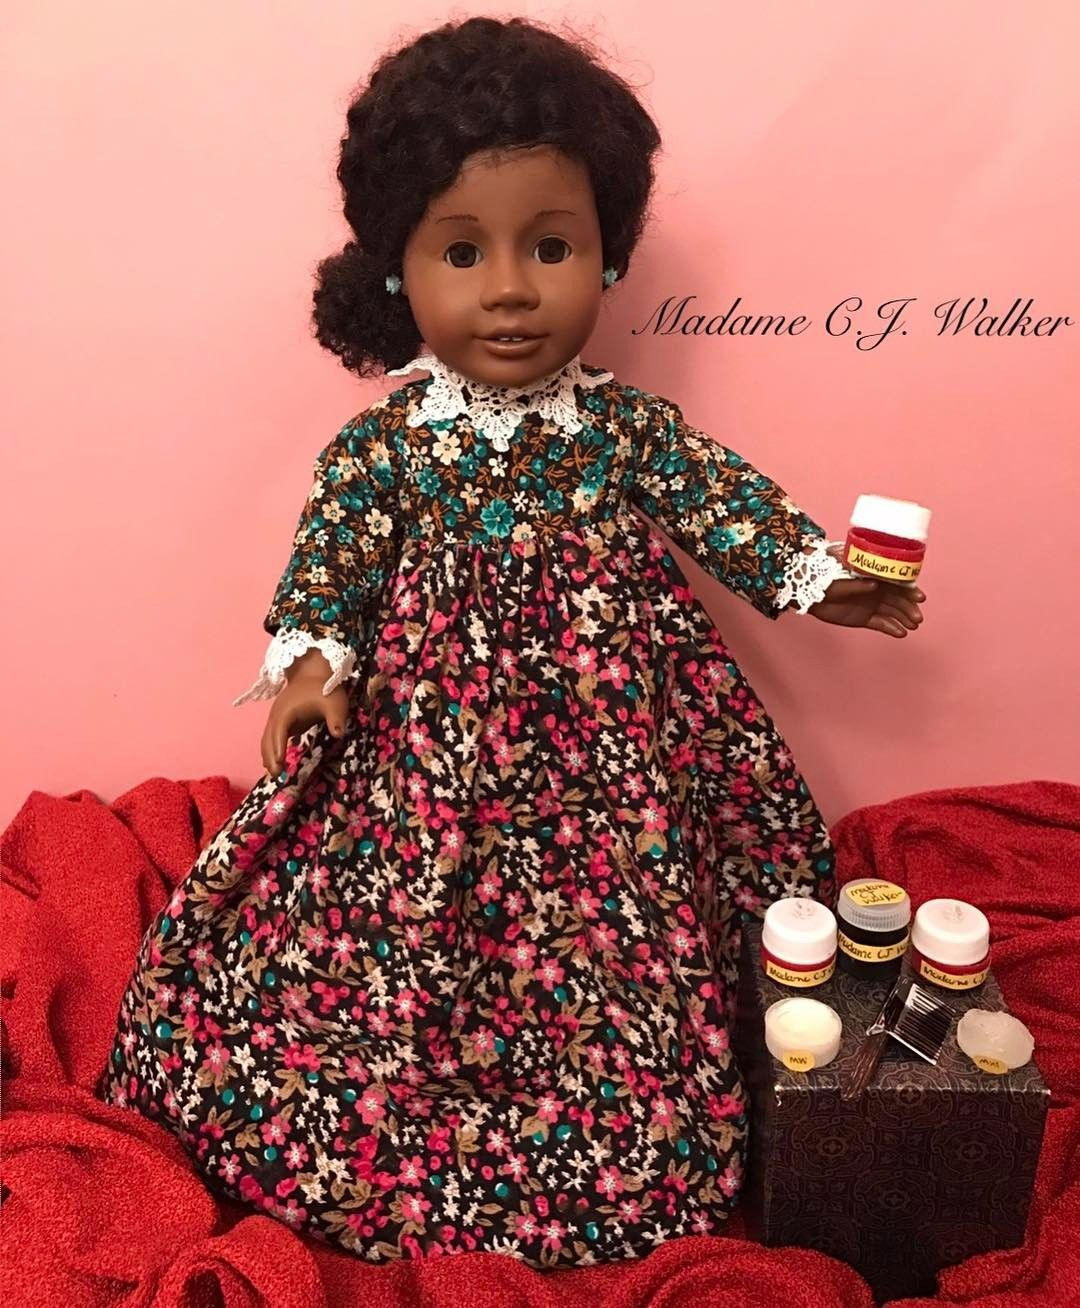 Madam C.J. Walker may be one of America's most successful